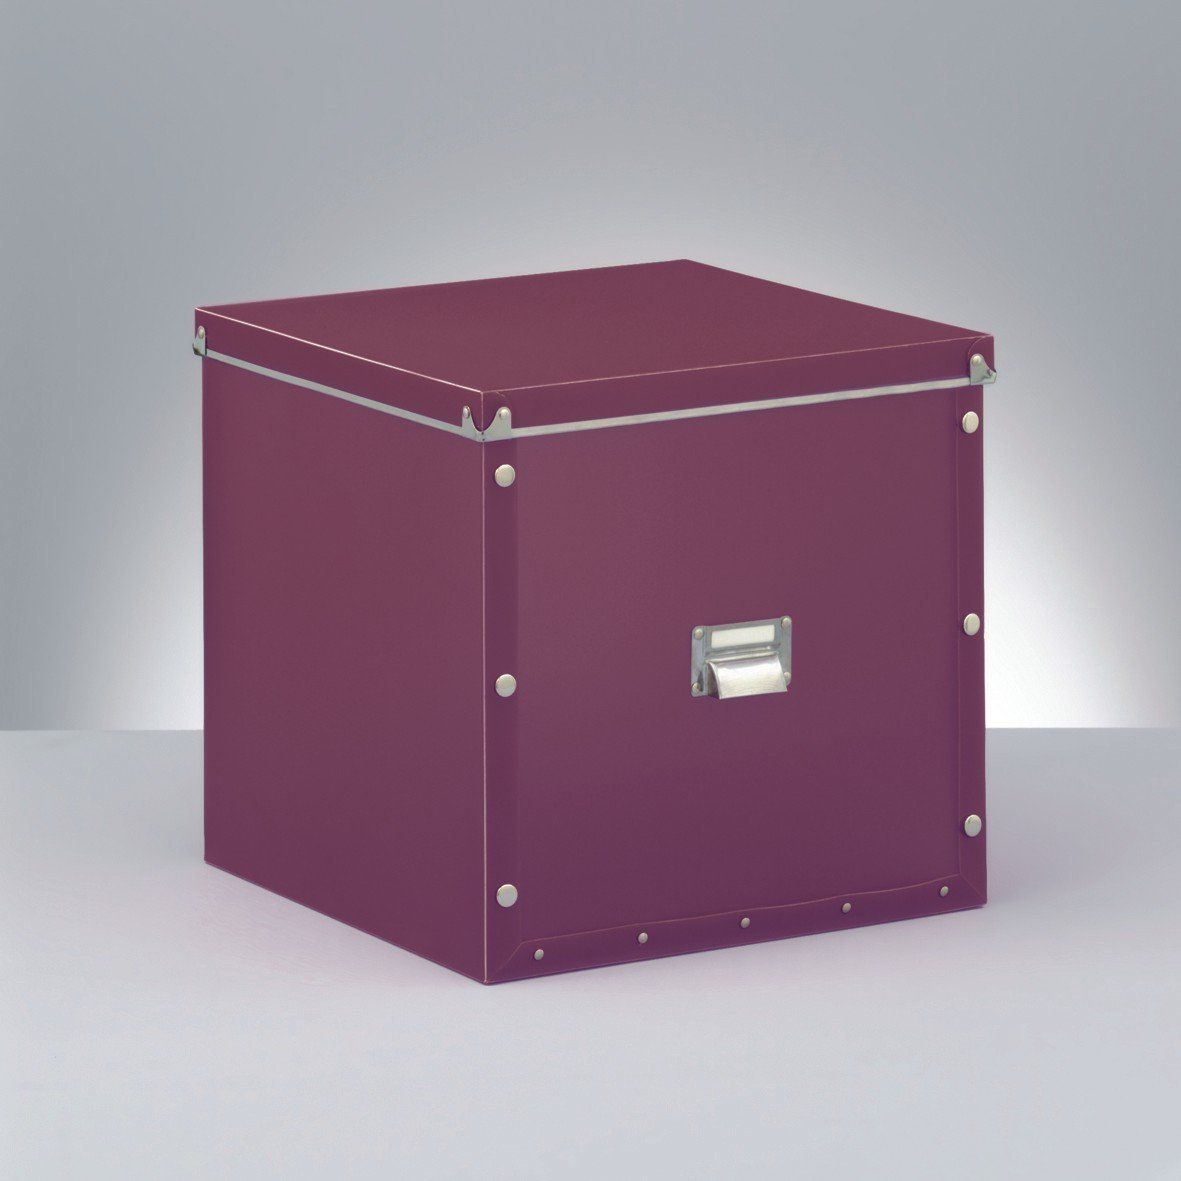 Zeller 17613 Storage Box Plastic 33 5 X 33 X 32 Purple Amazon Co Uk Kitchen Home Storage Storage Box Box